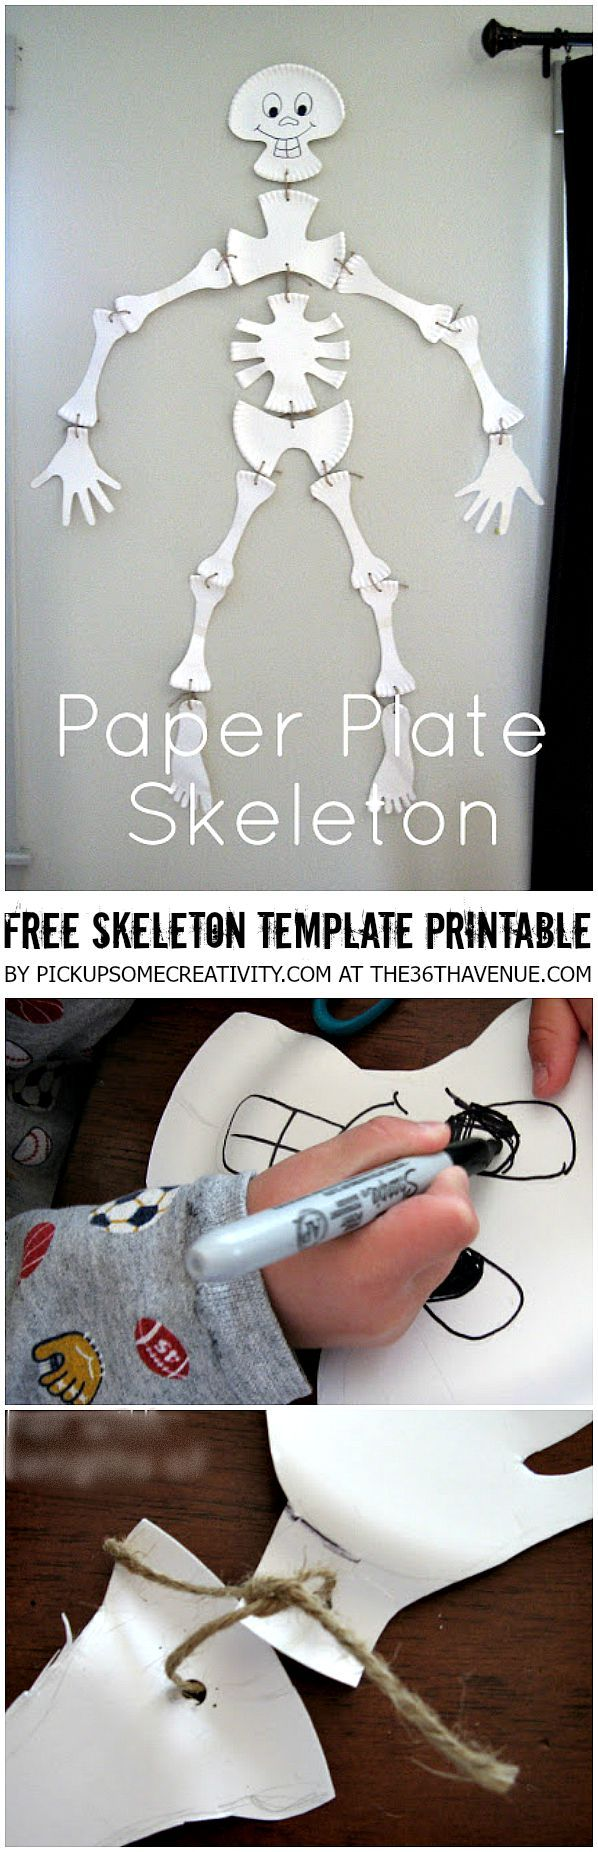 halloween crafts paper plate skeleton chris d elia craft halloween crafts paper plate skeleton and skeleton template printable at the36thavenue com